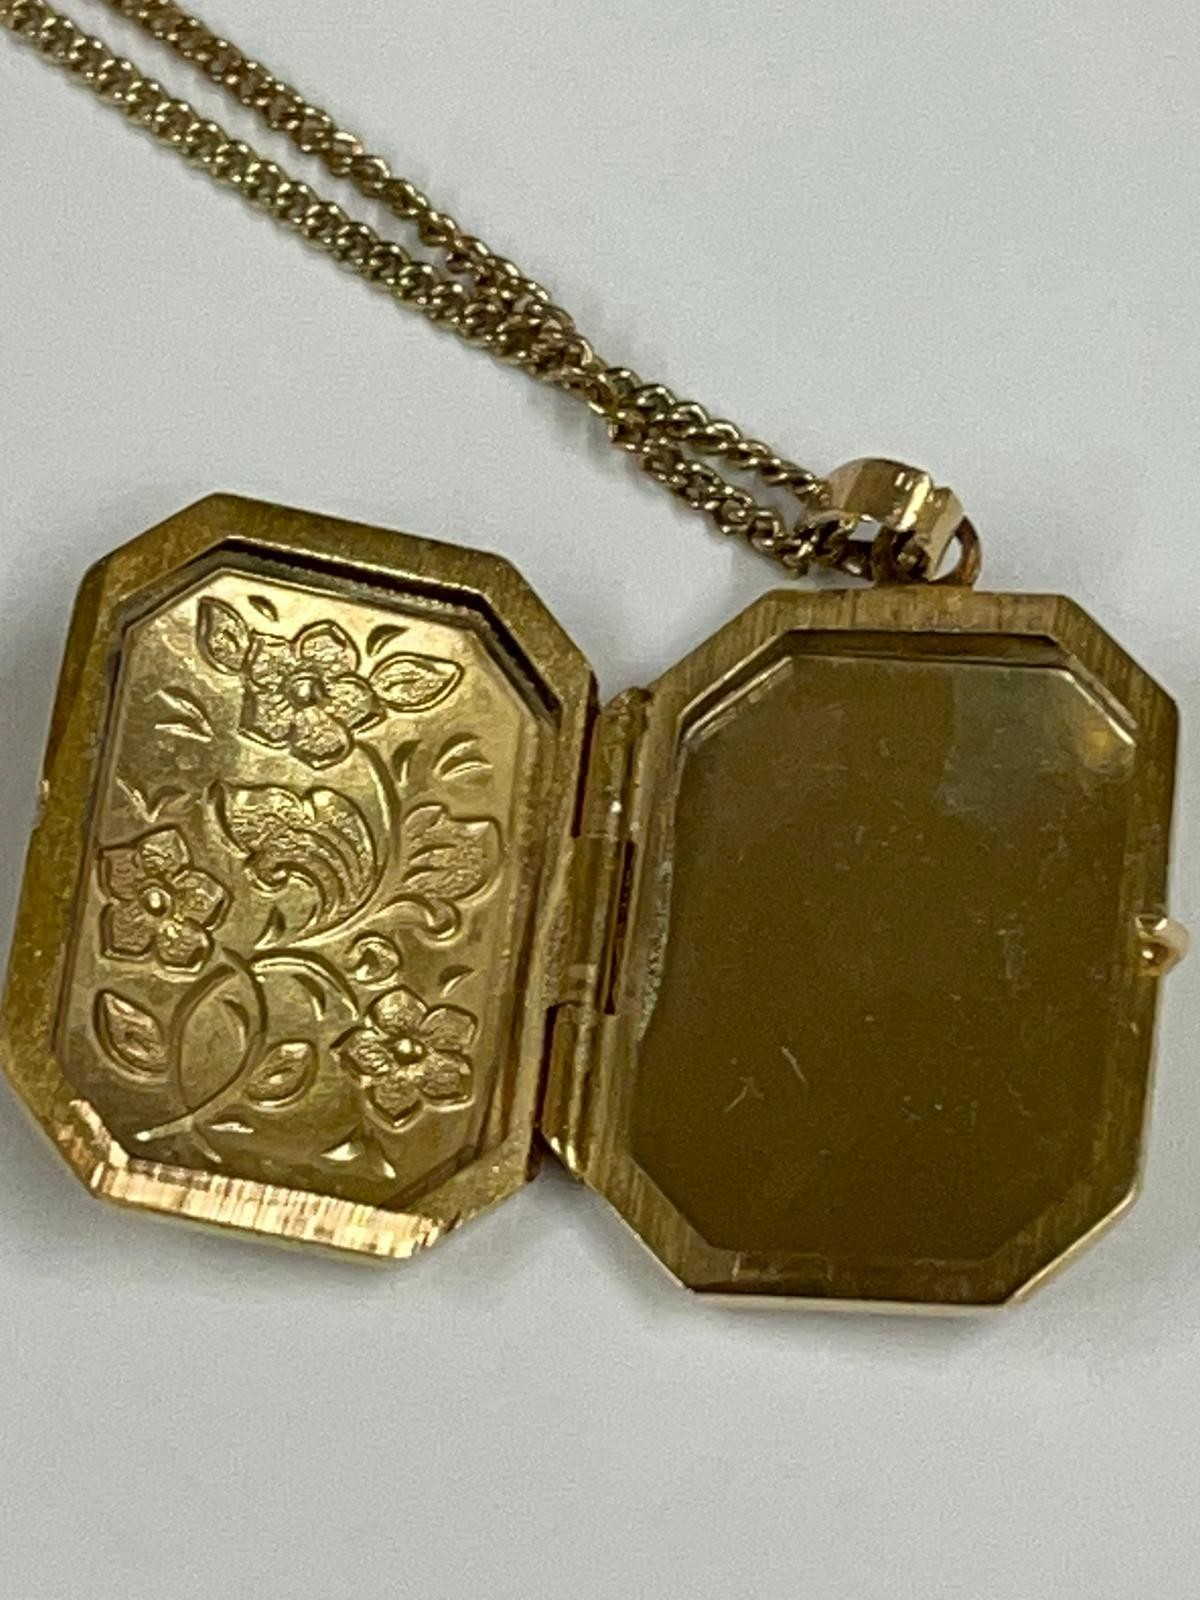 Vintage Clogau 9k yellow gold chain and locket , fully hallmarked. - Image 3 of 10